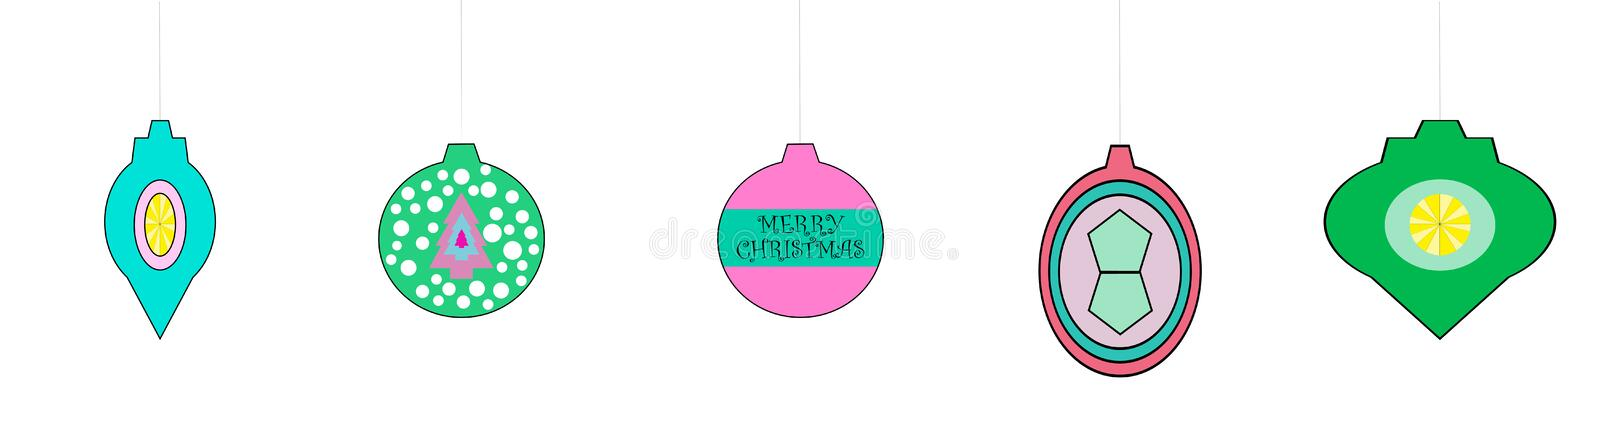 Whimsical Retro Looking Christmas Ornaments royalty free stock image